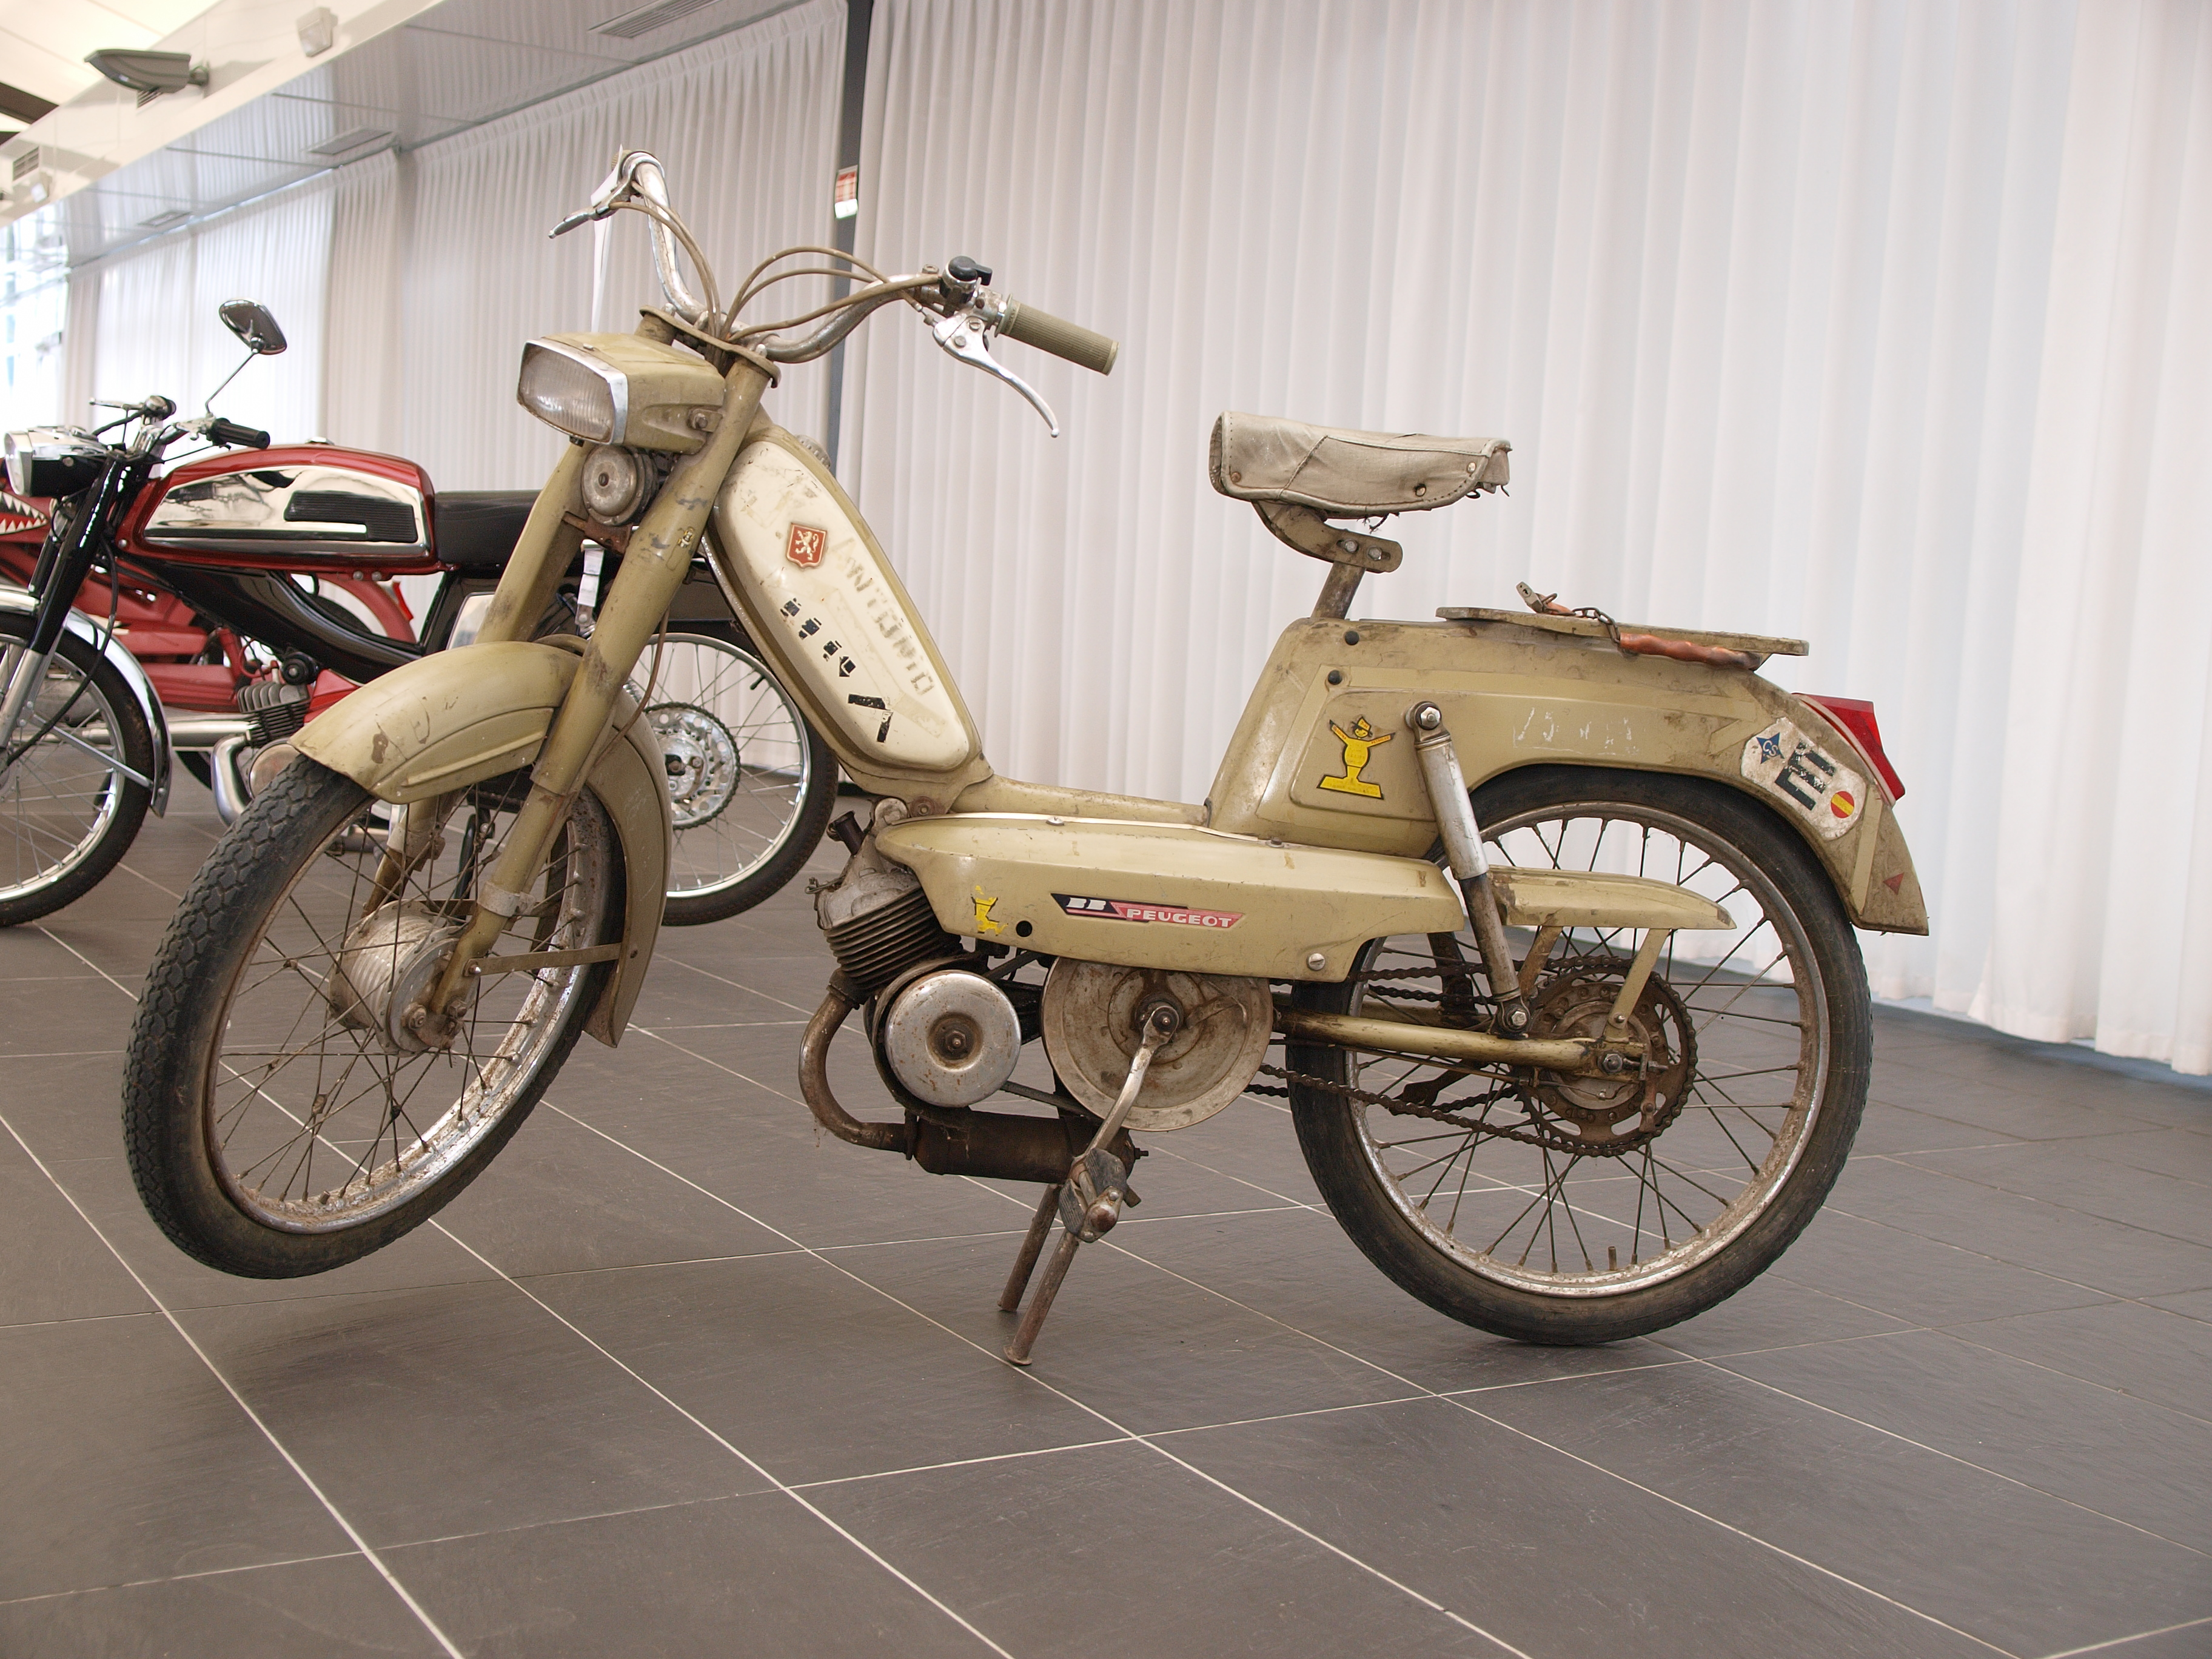 File:Peugeot BB Moped 2012 564.jpg